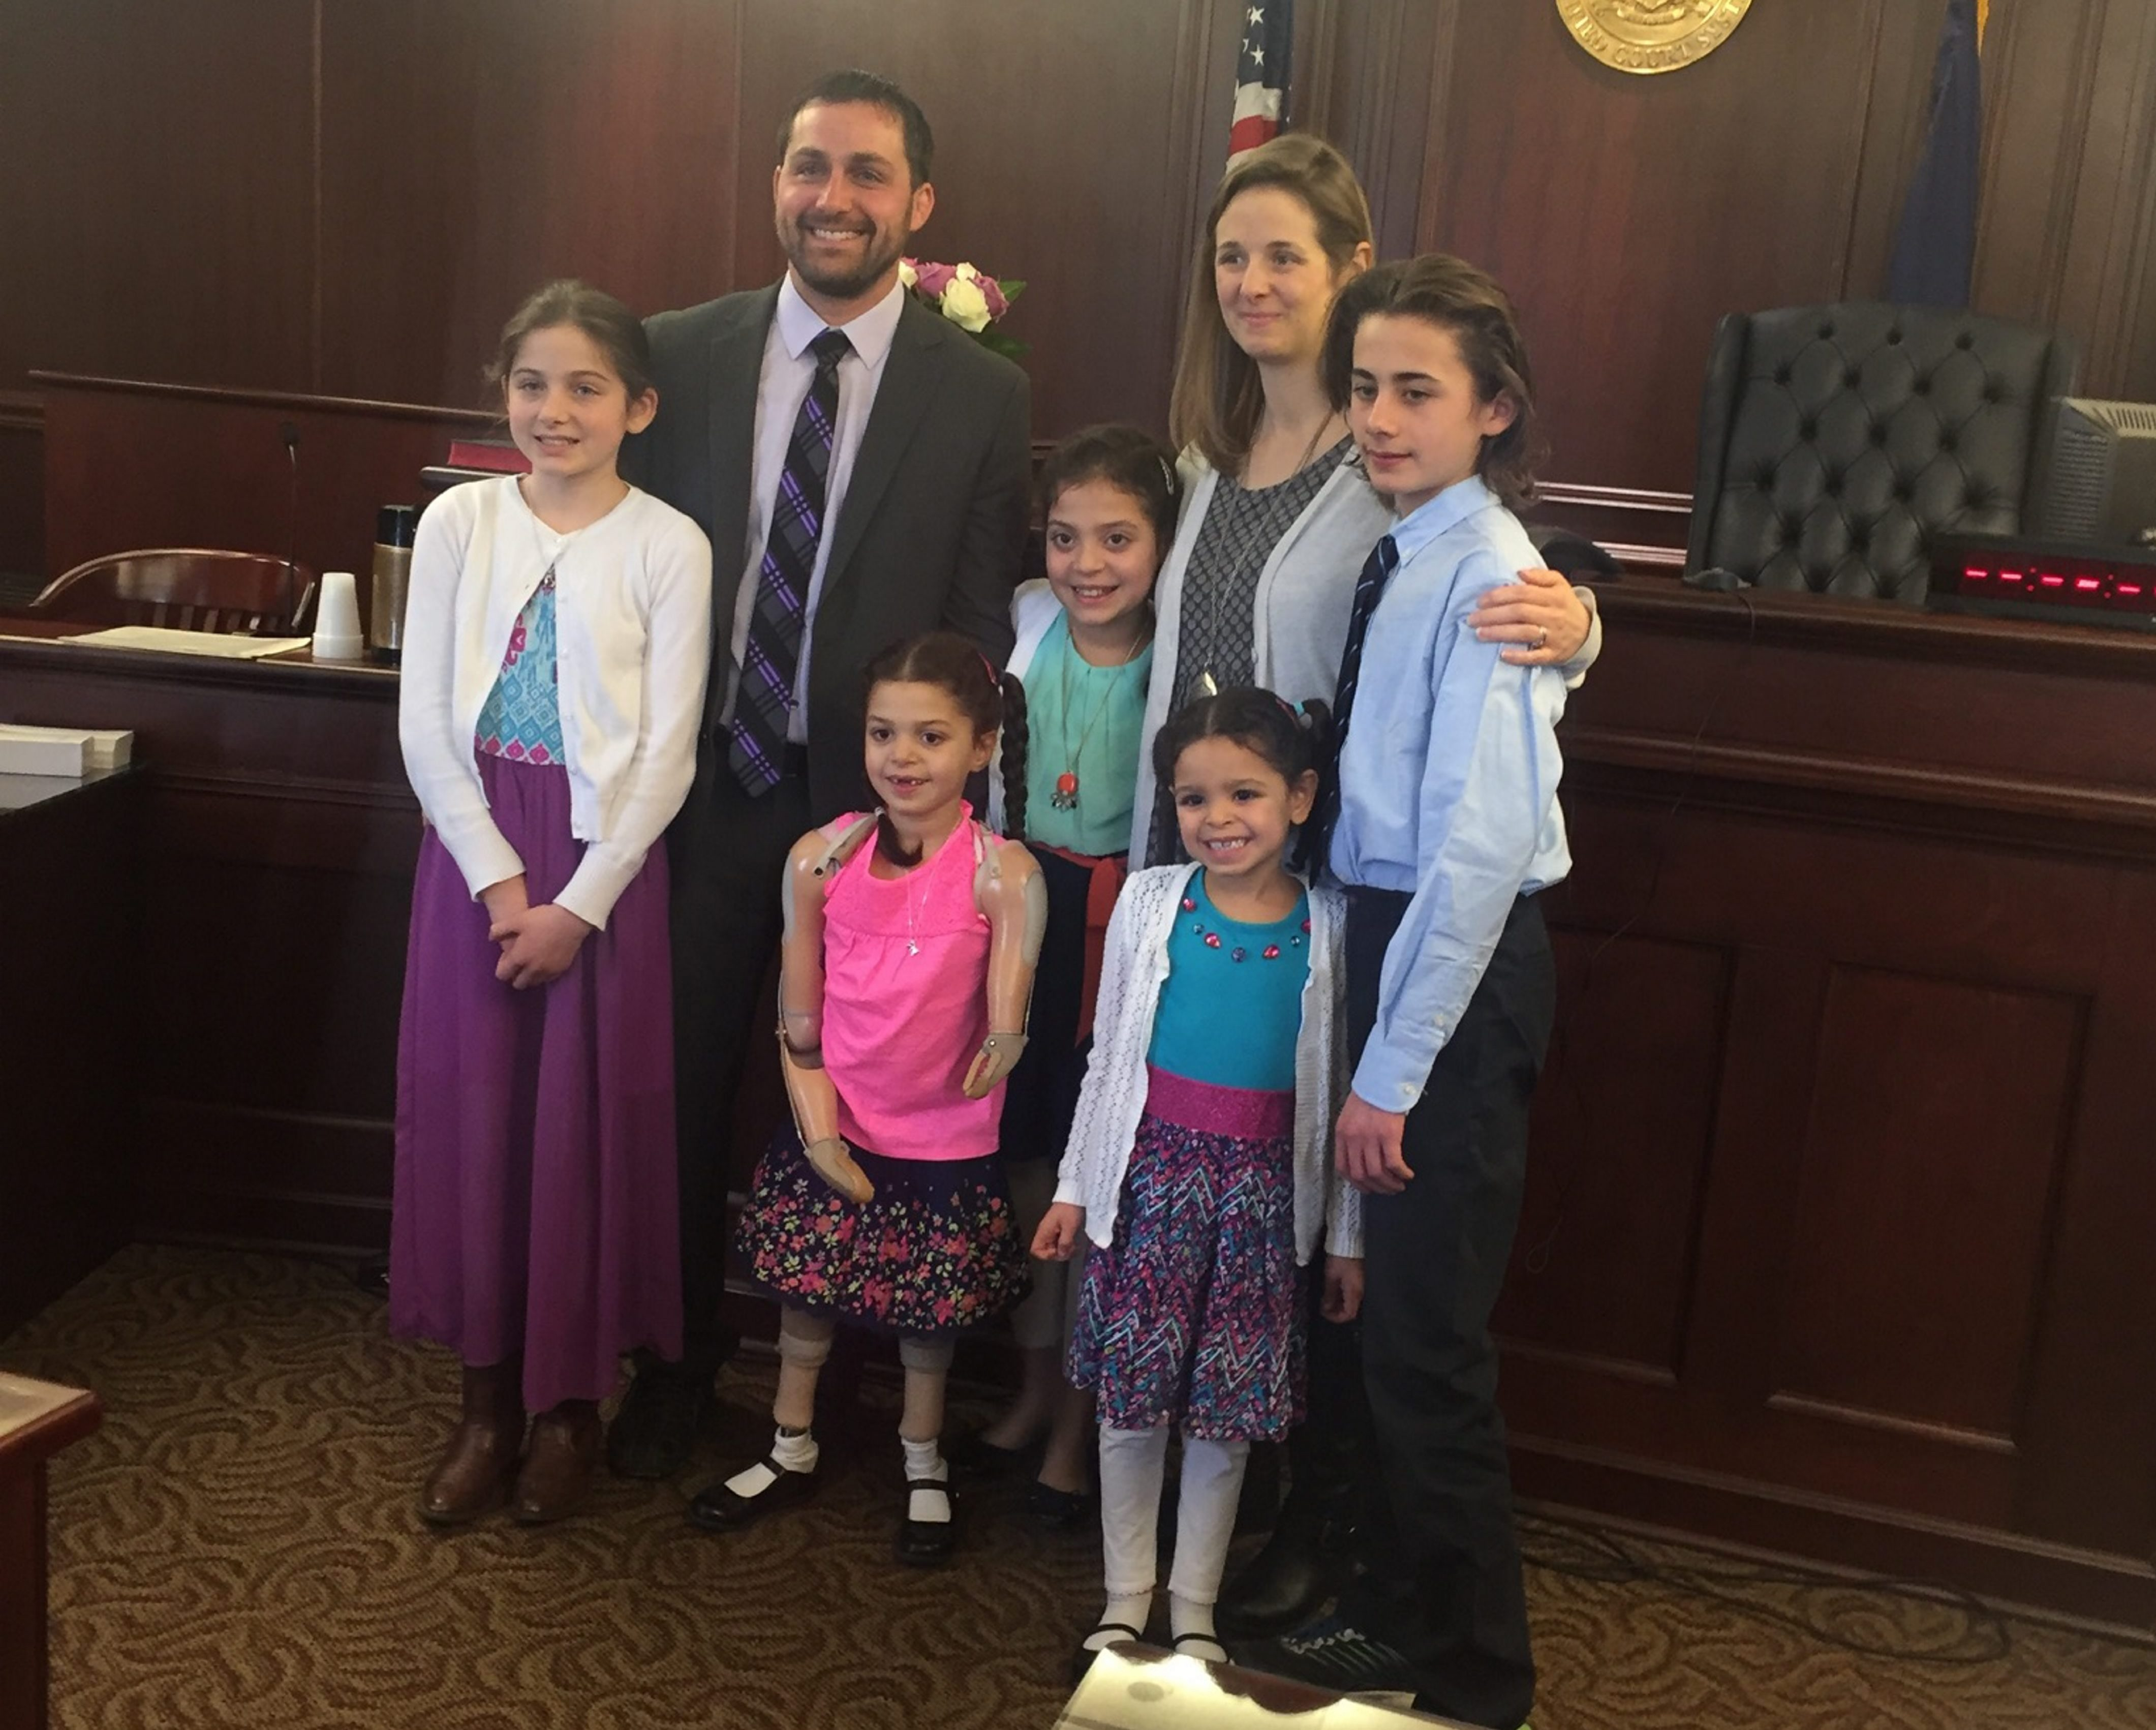 Shortly before Christmas, Vaillancourt family of Town of Tona-wanda – from left, Hailey, Phil, Josie, Kamila, Kim, Chalie and Ryan – rejoices in Family Court. Days later, their lives changed.